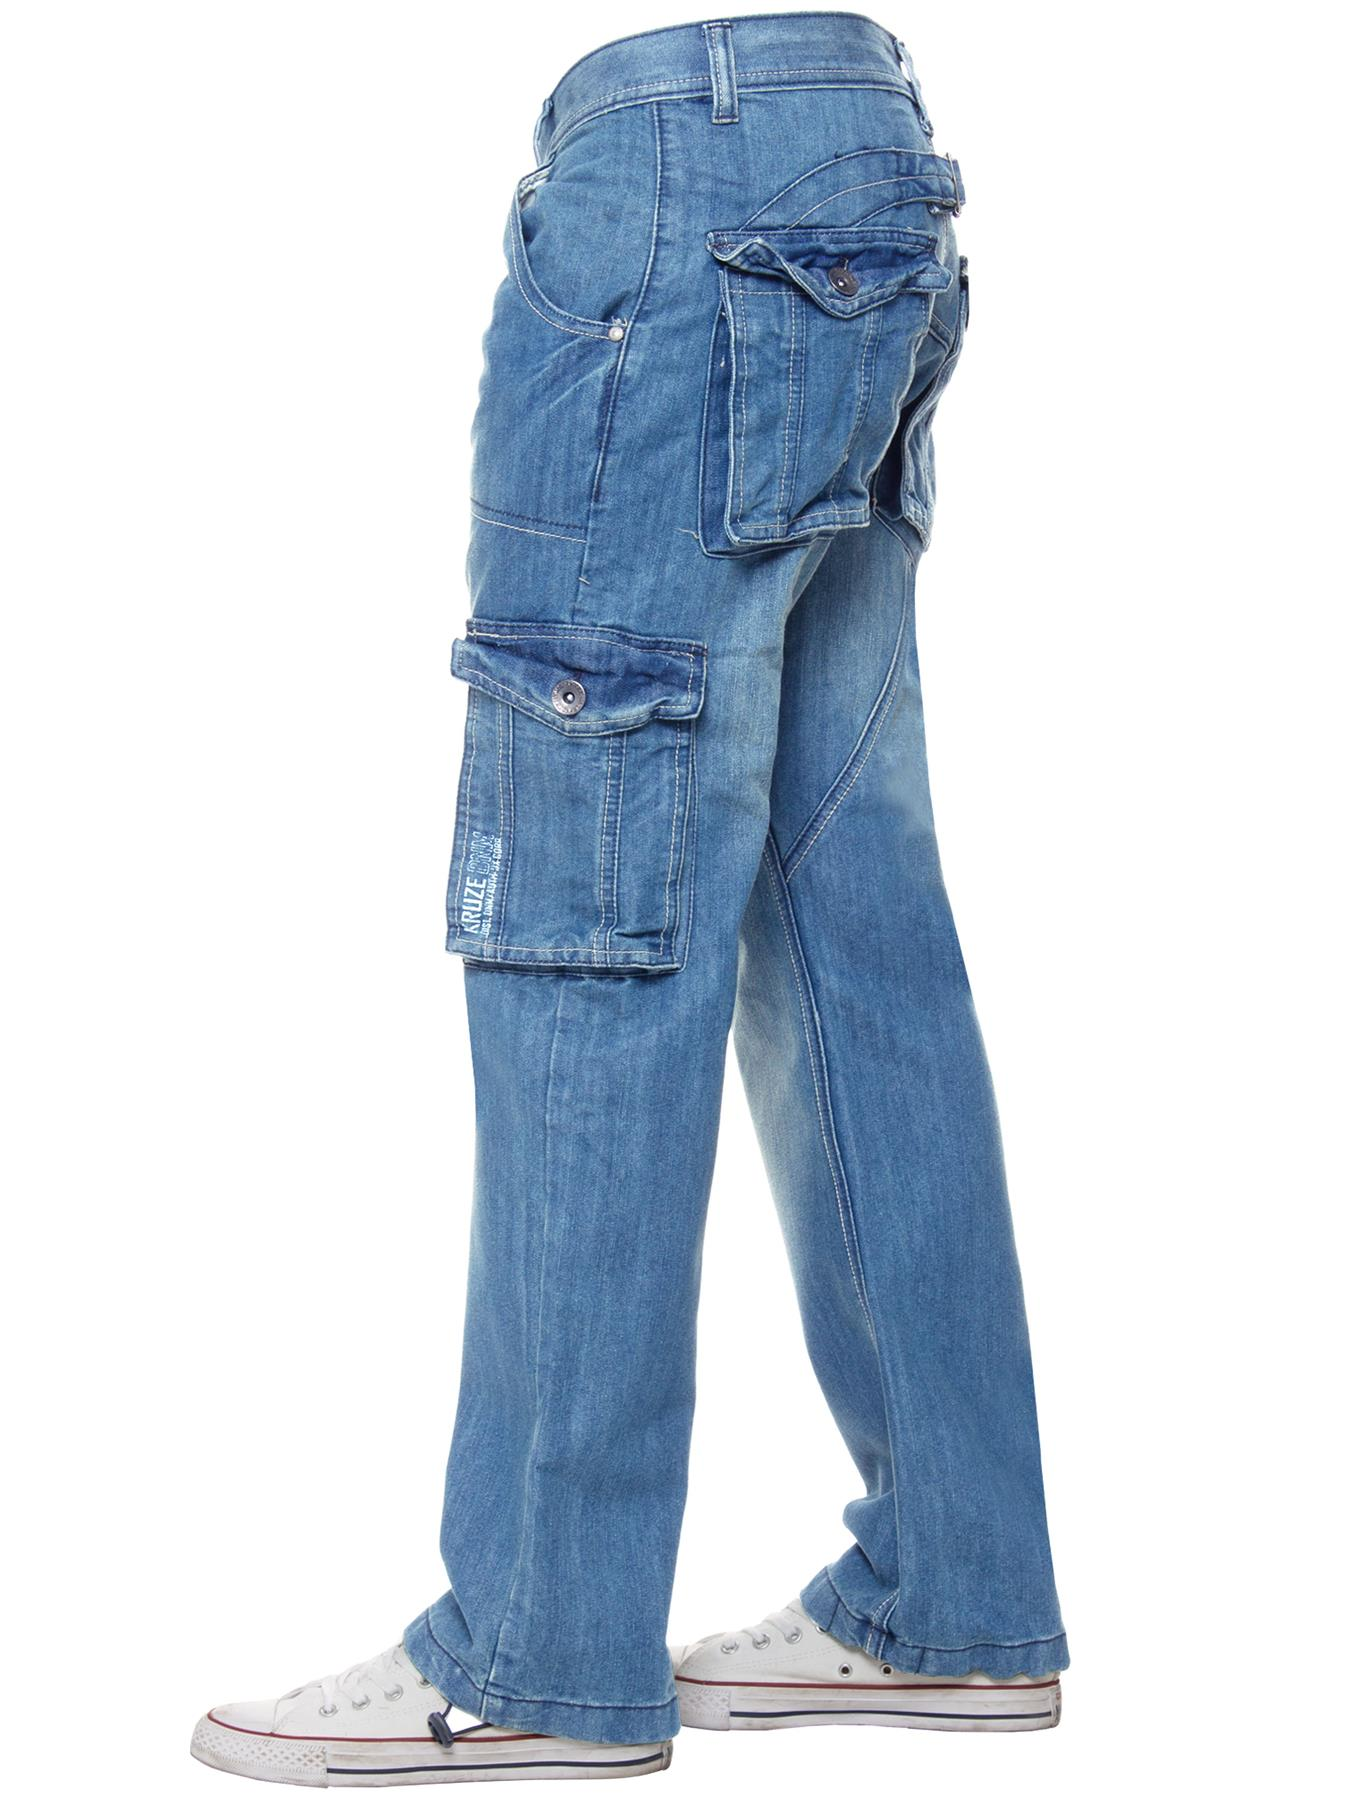 Kruze-Mens-Cargo-Combat-Jeans-Casual-Work-Denim-Pants-Big-Tall-All-Waist-Sizes thumbnail 48